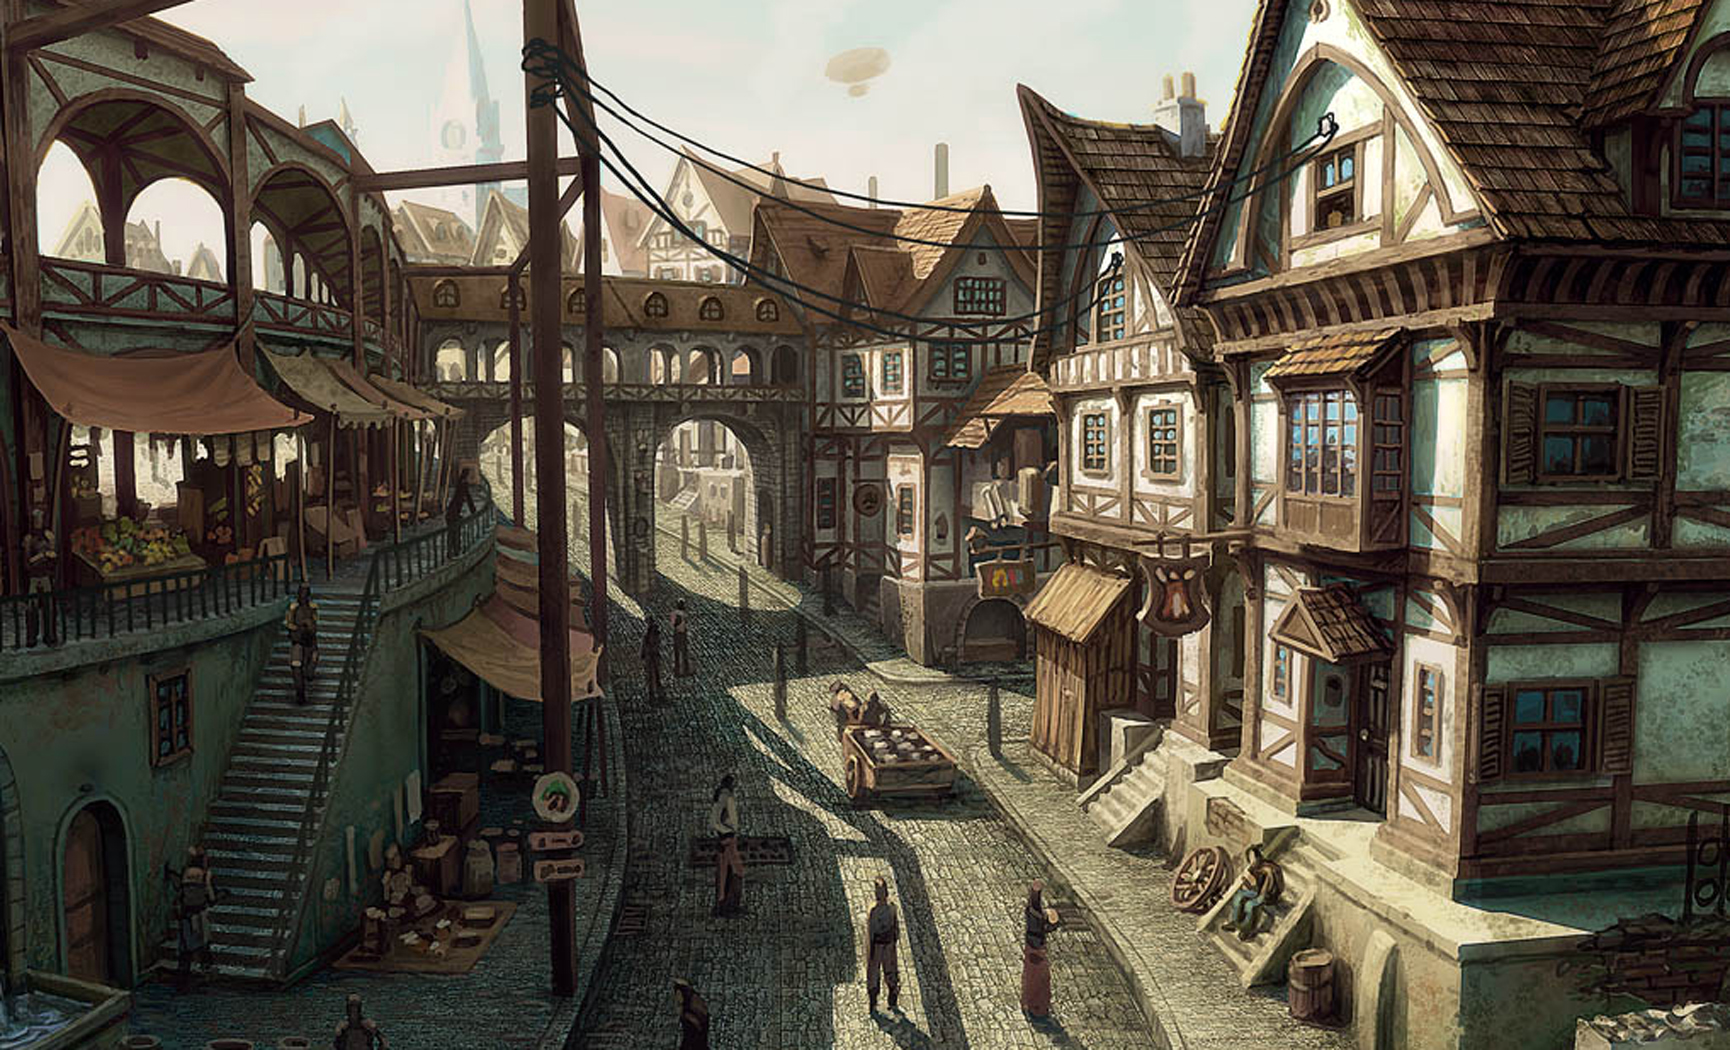 artwork-buildings-cityscapes-medieval-paintings-942238-1730x1050.jpg